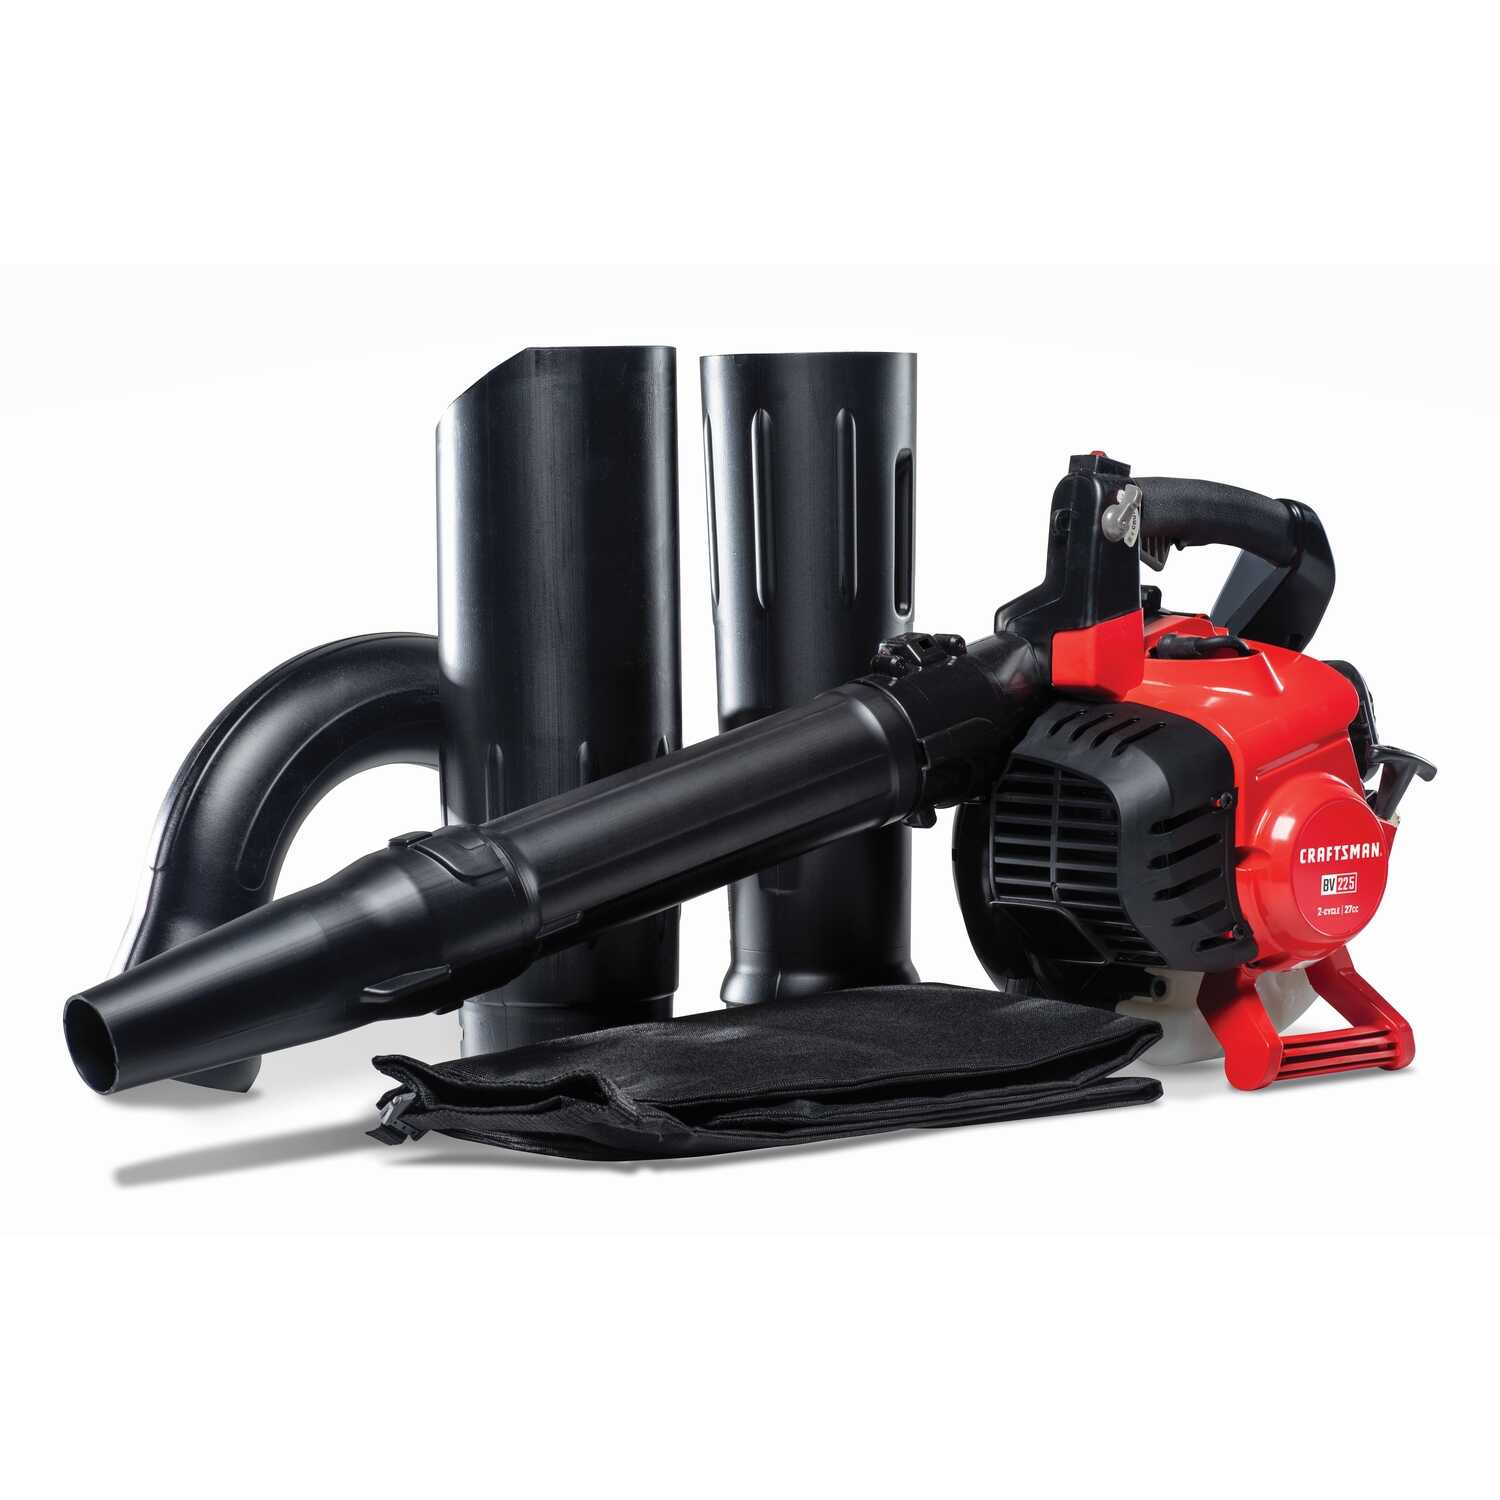 Craftsman  Leaf Blower  Handheld